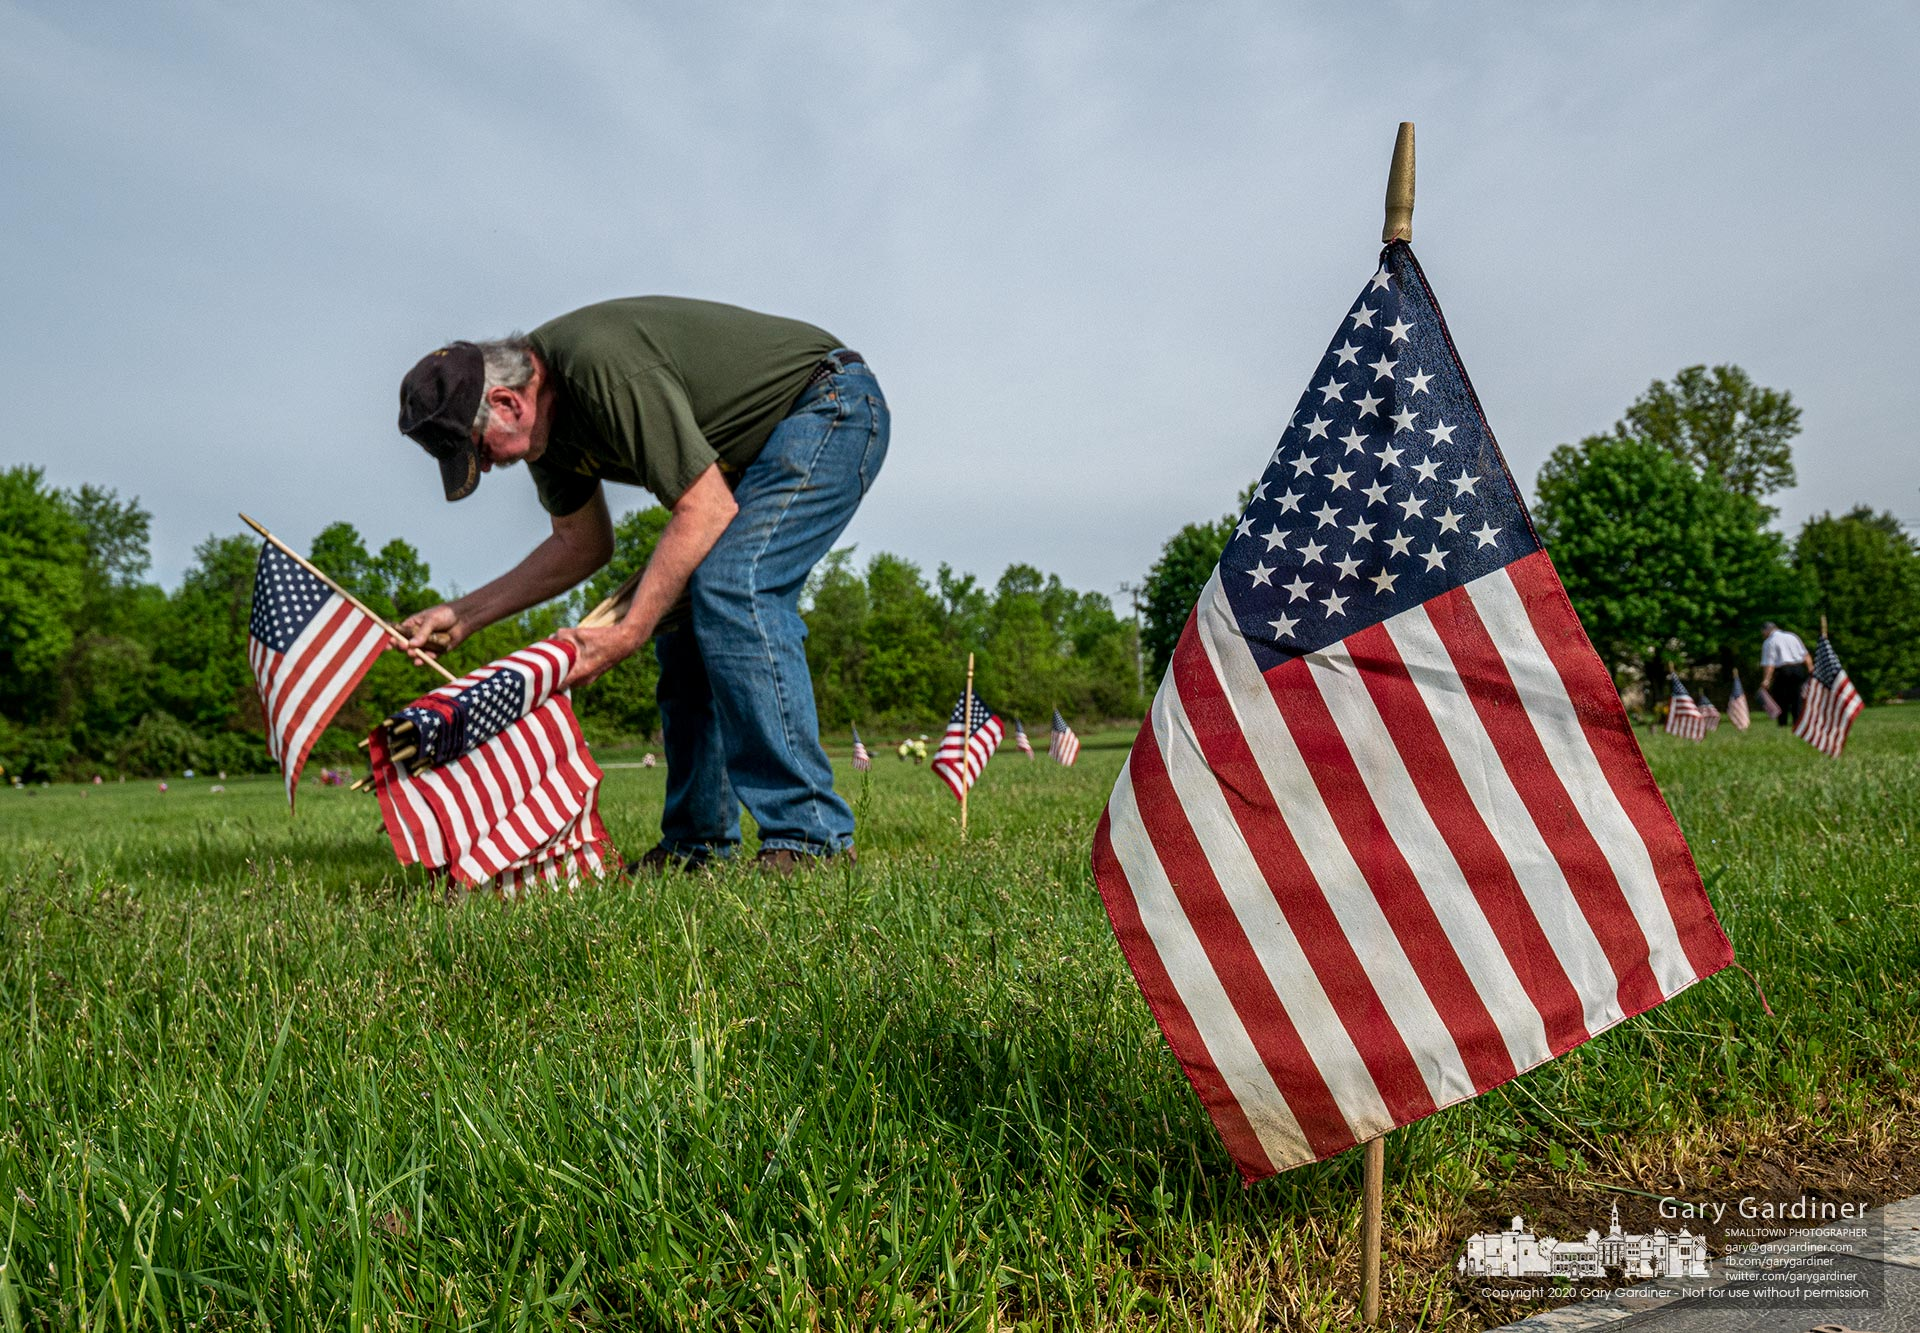 In an annual ritual a Westerville American Legion member places a flag at the gravestone of a veteran buried at Northlawn Cemetery. My Final Photo for May 23, 2020.